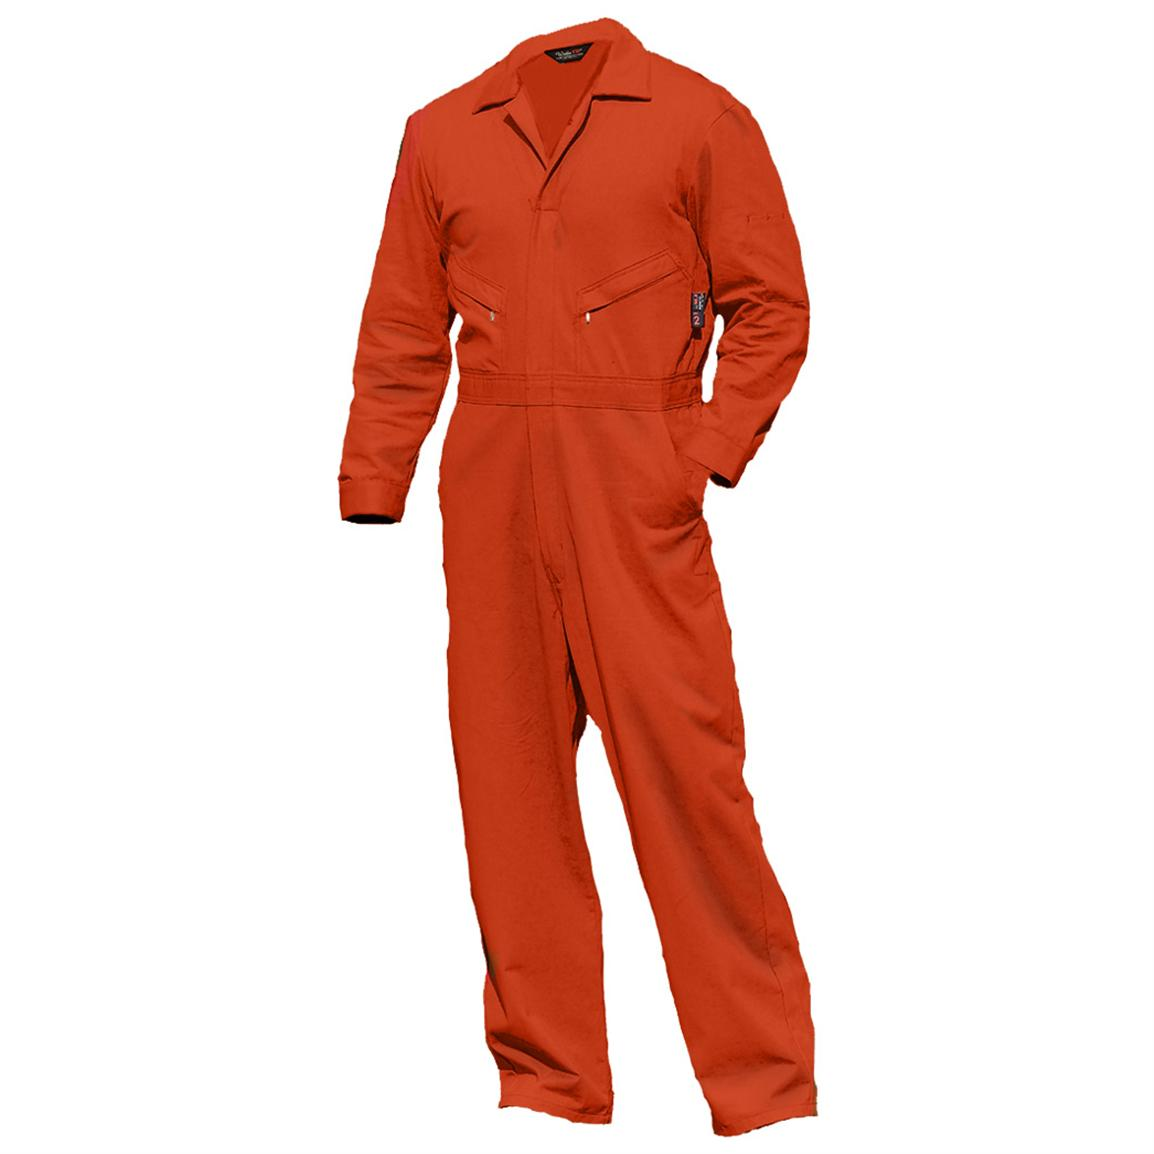 Walls Flame Resistant Industrial Coveralls, Orange